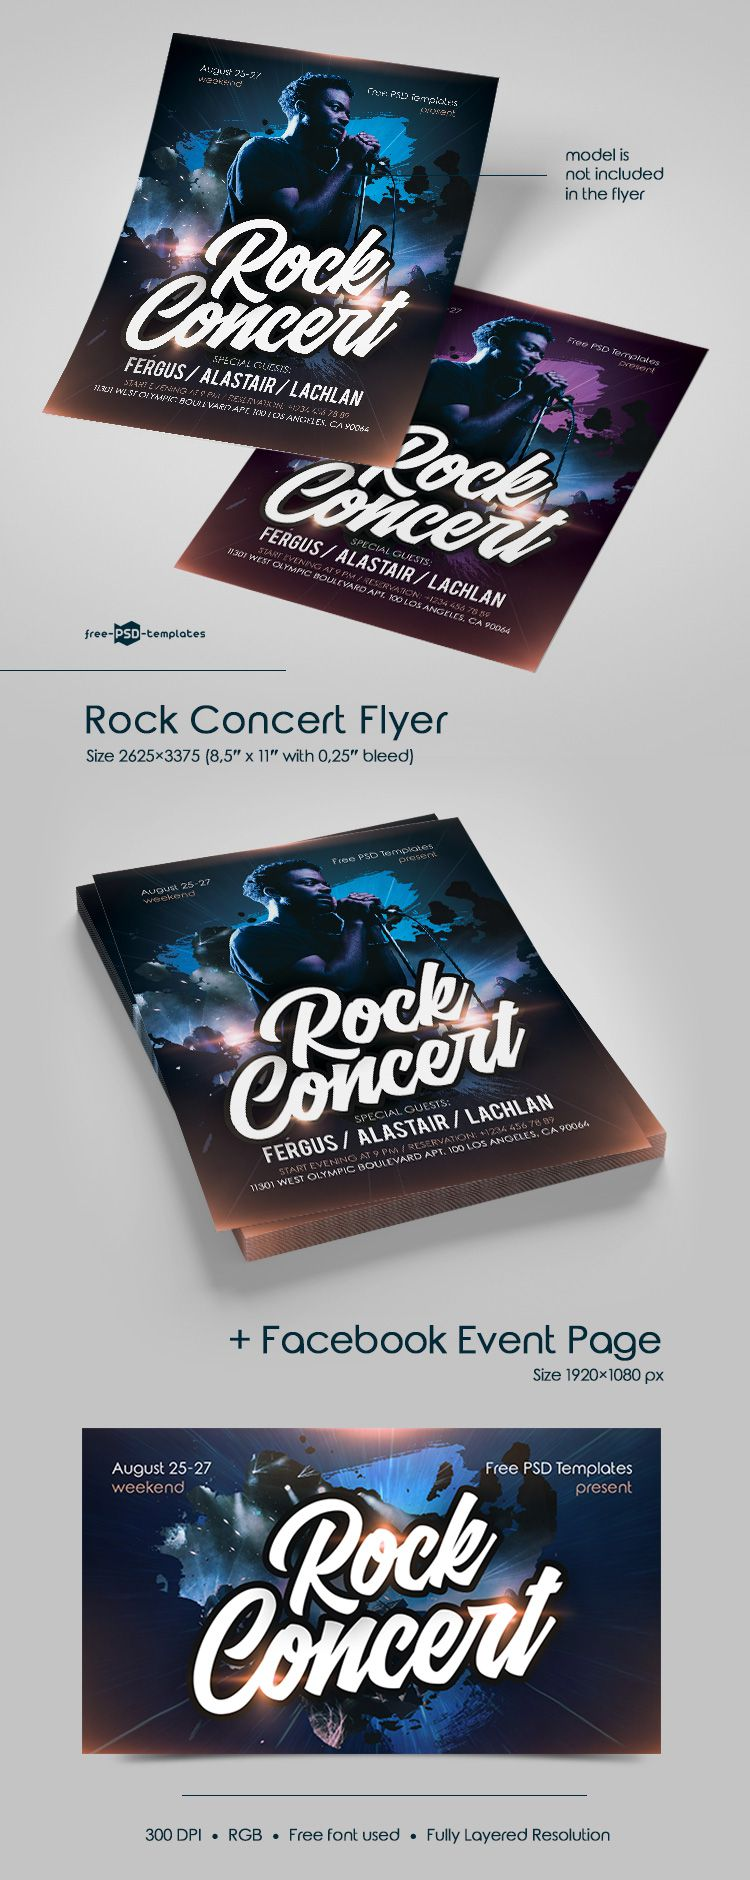 006 Remarkable Free Rock Concert Poster Template Psd Picture Full